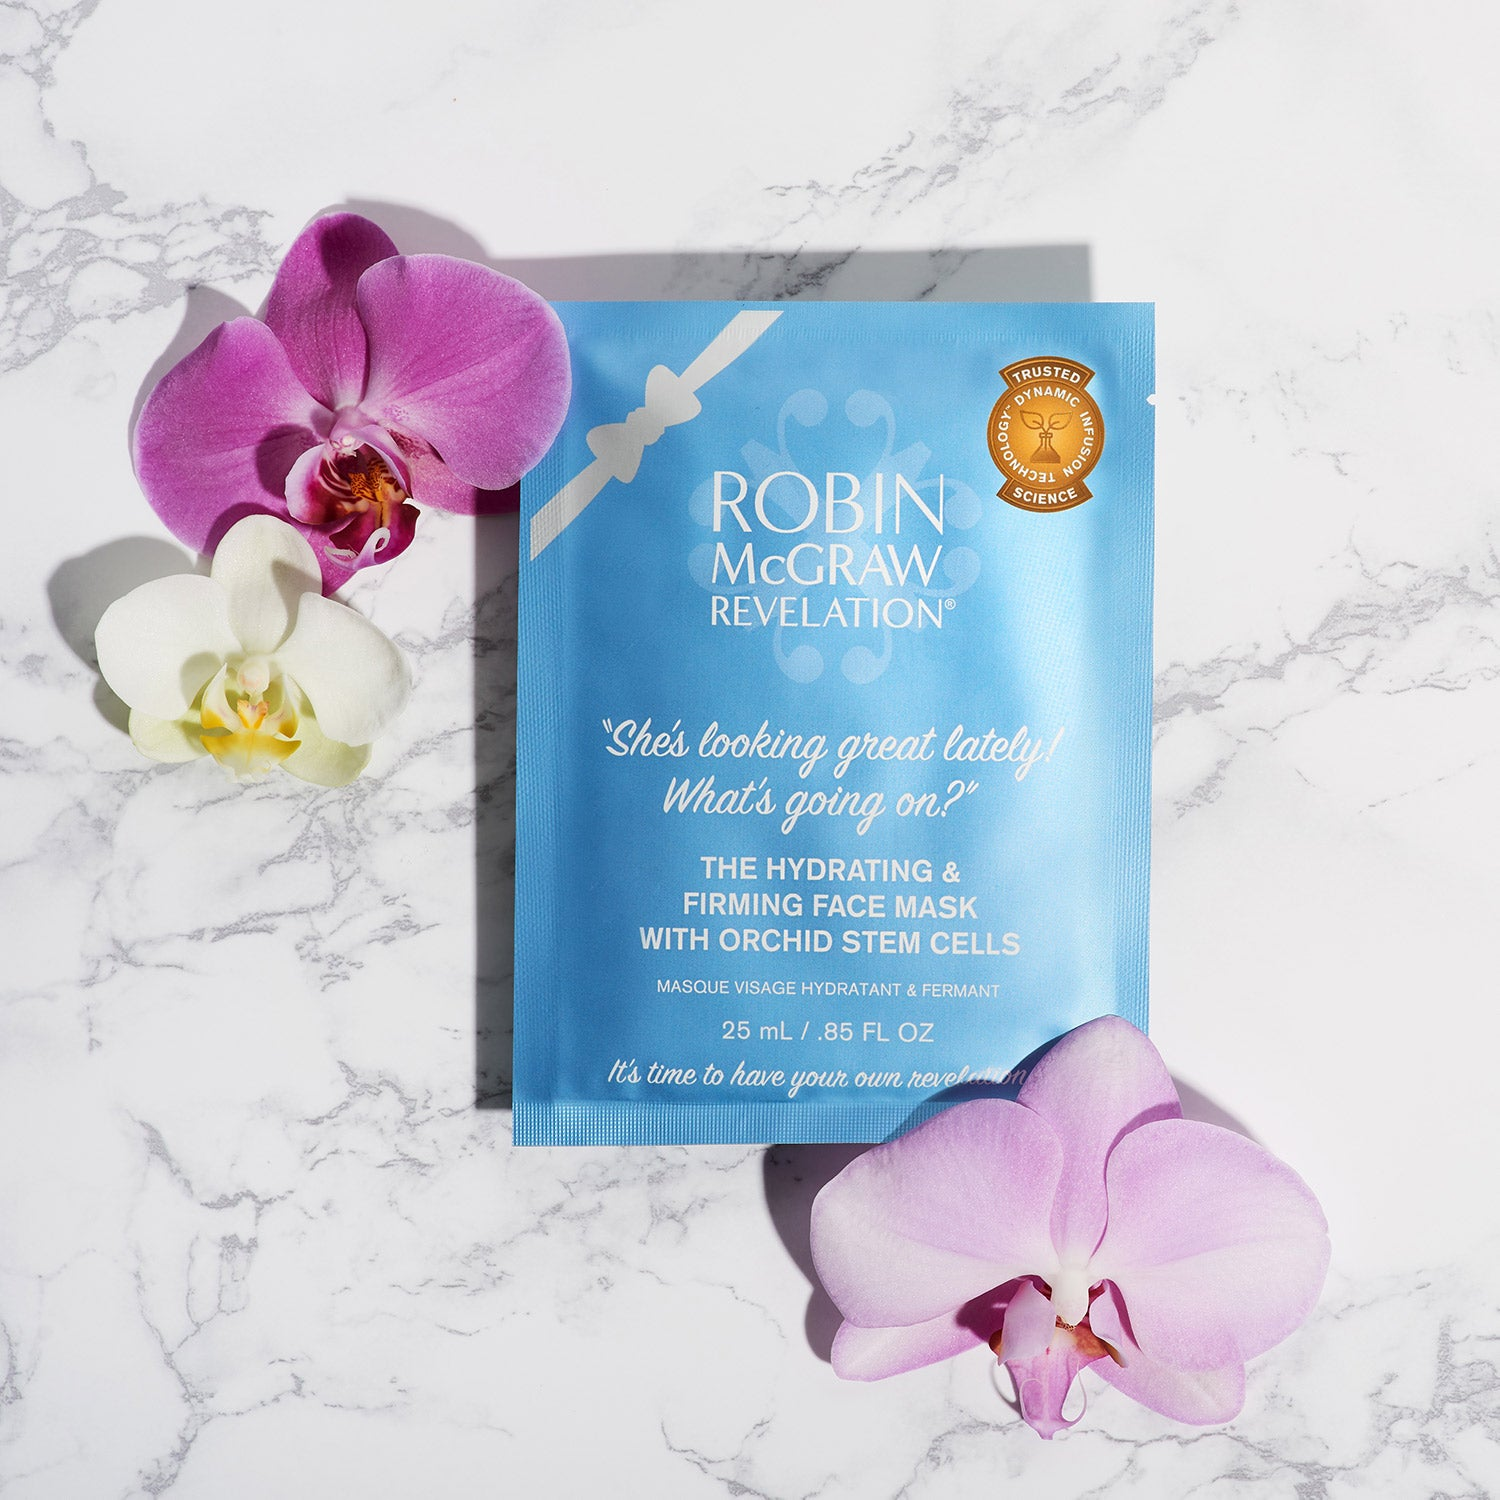 the hydrating & firming mask